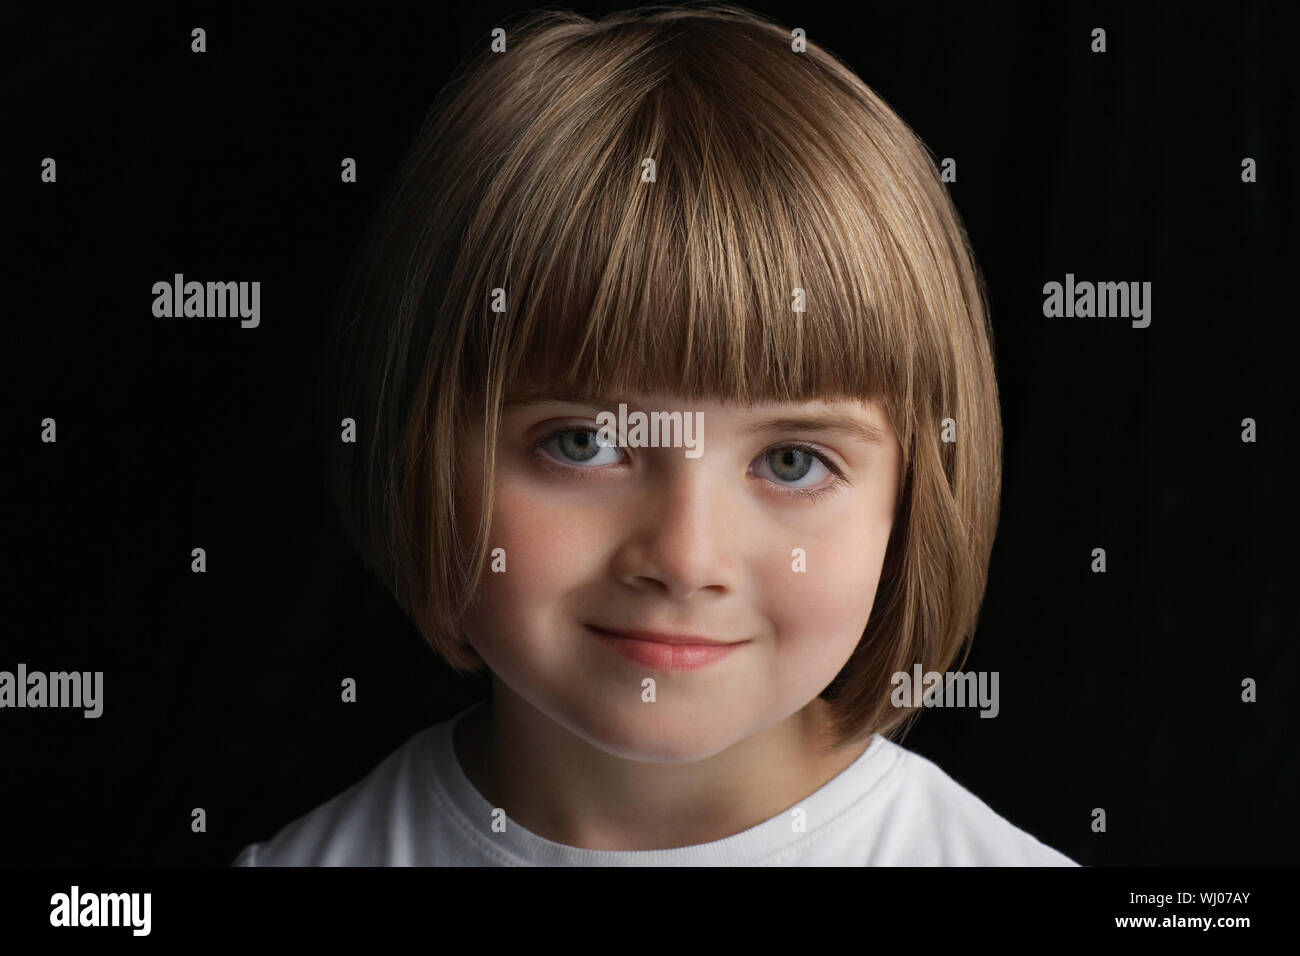 Closeup Portrait Of Happy Cute Little Girl With Short Hair Isolated On Black Background Stock Photo Alamy